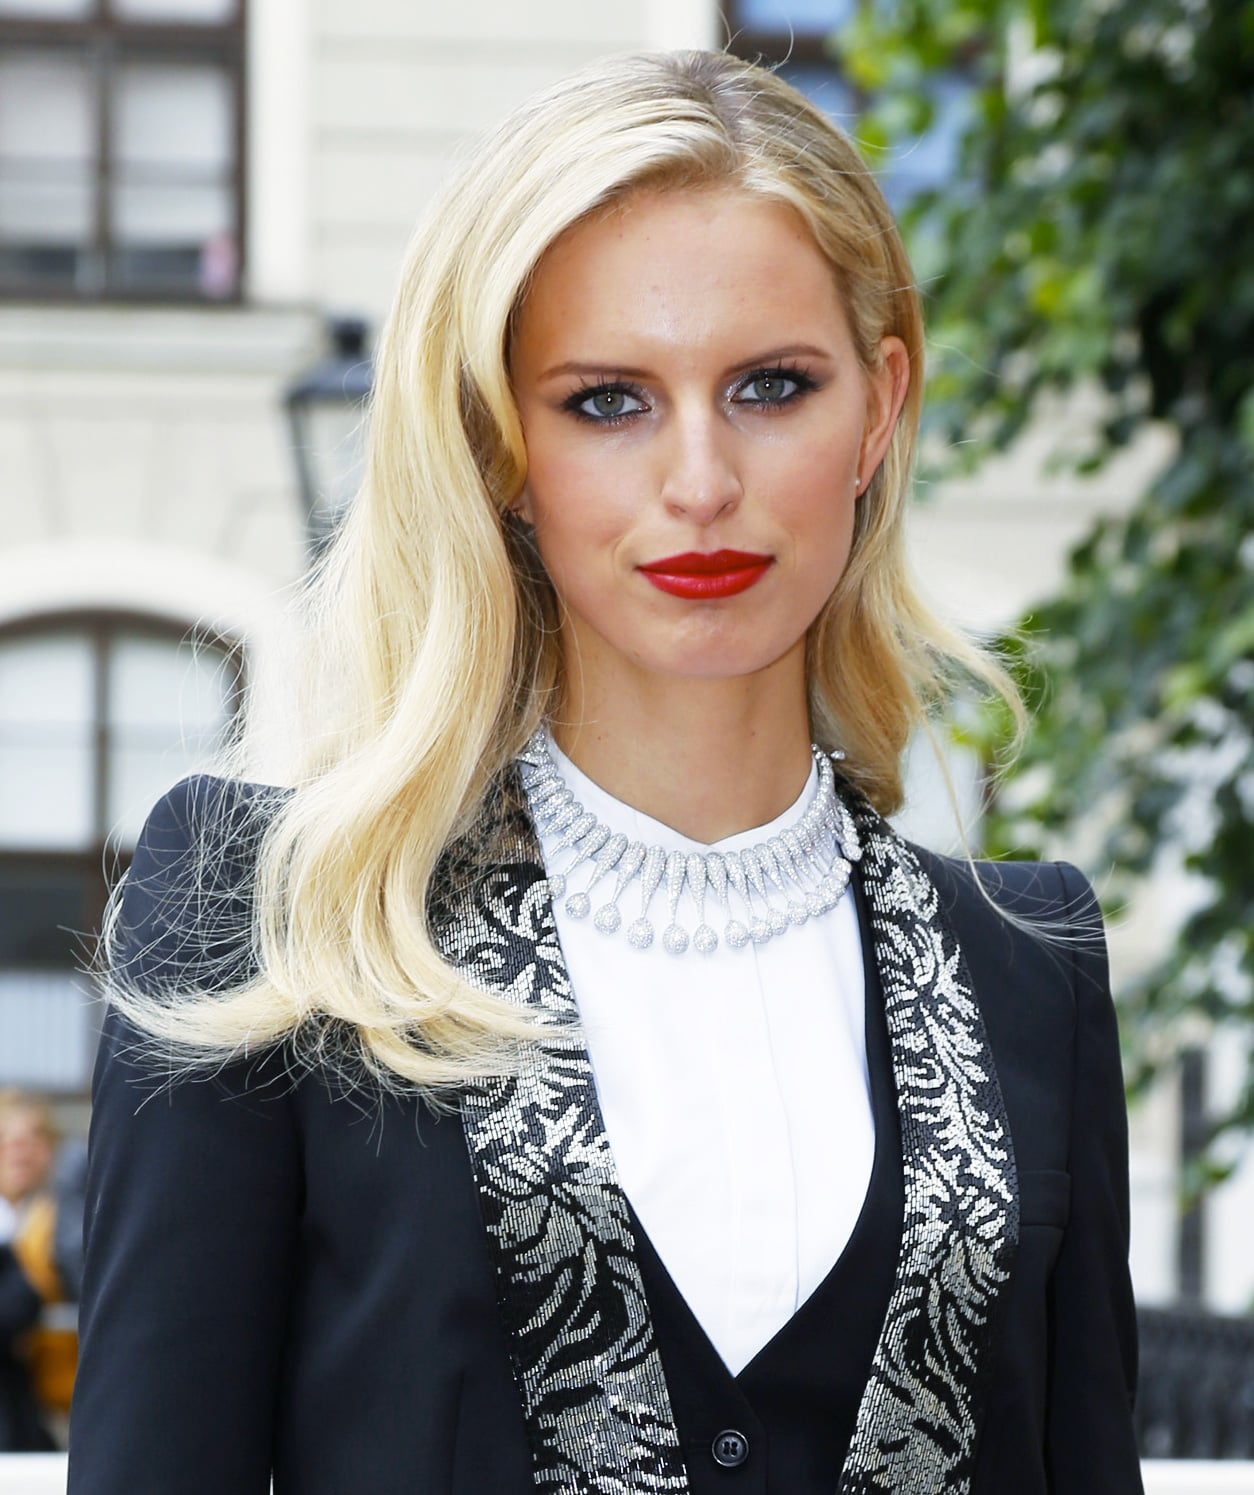 For the AIDS Solidarity Gala 2013 in Austria earlier this week, model Karolina Kurkova opted for soft blond waves and a bold crimson lipstick.